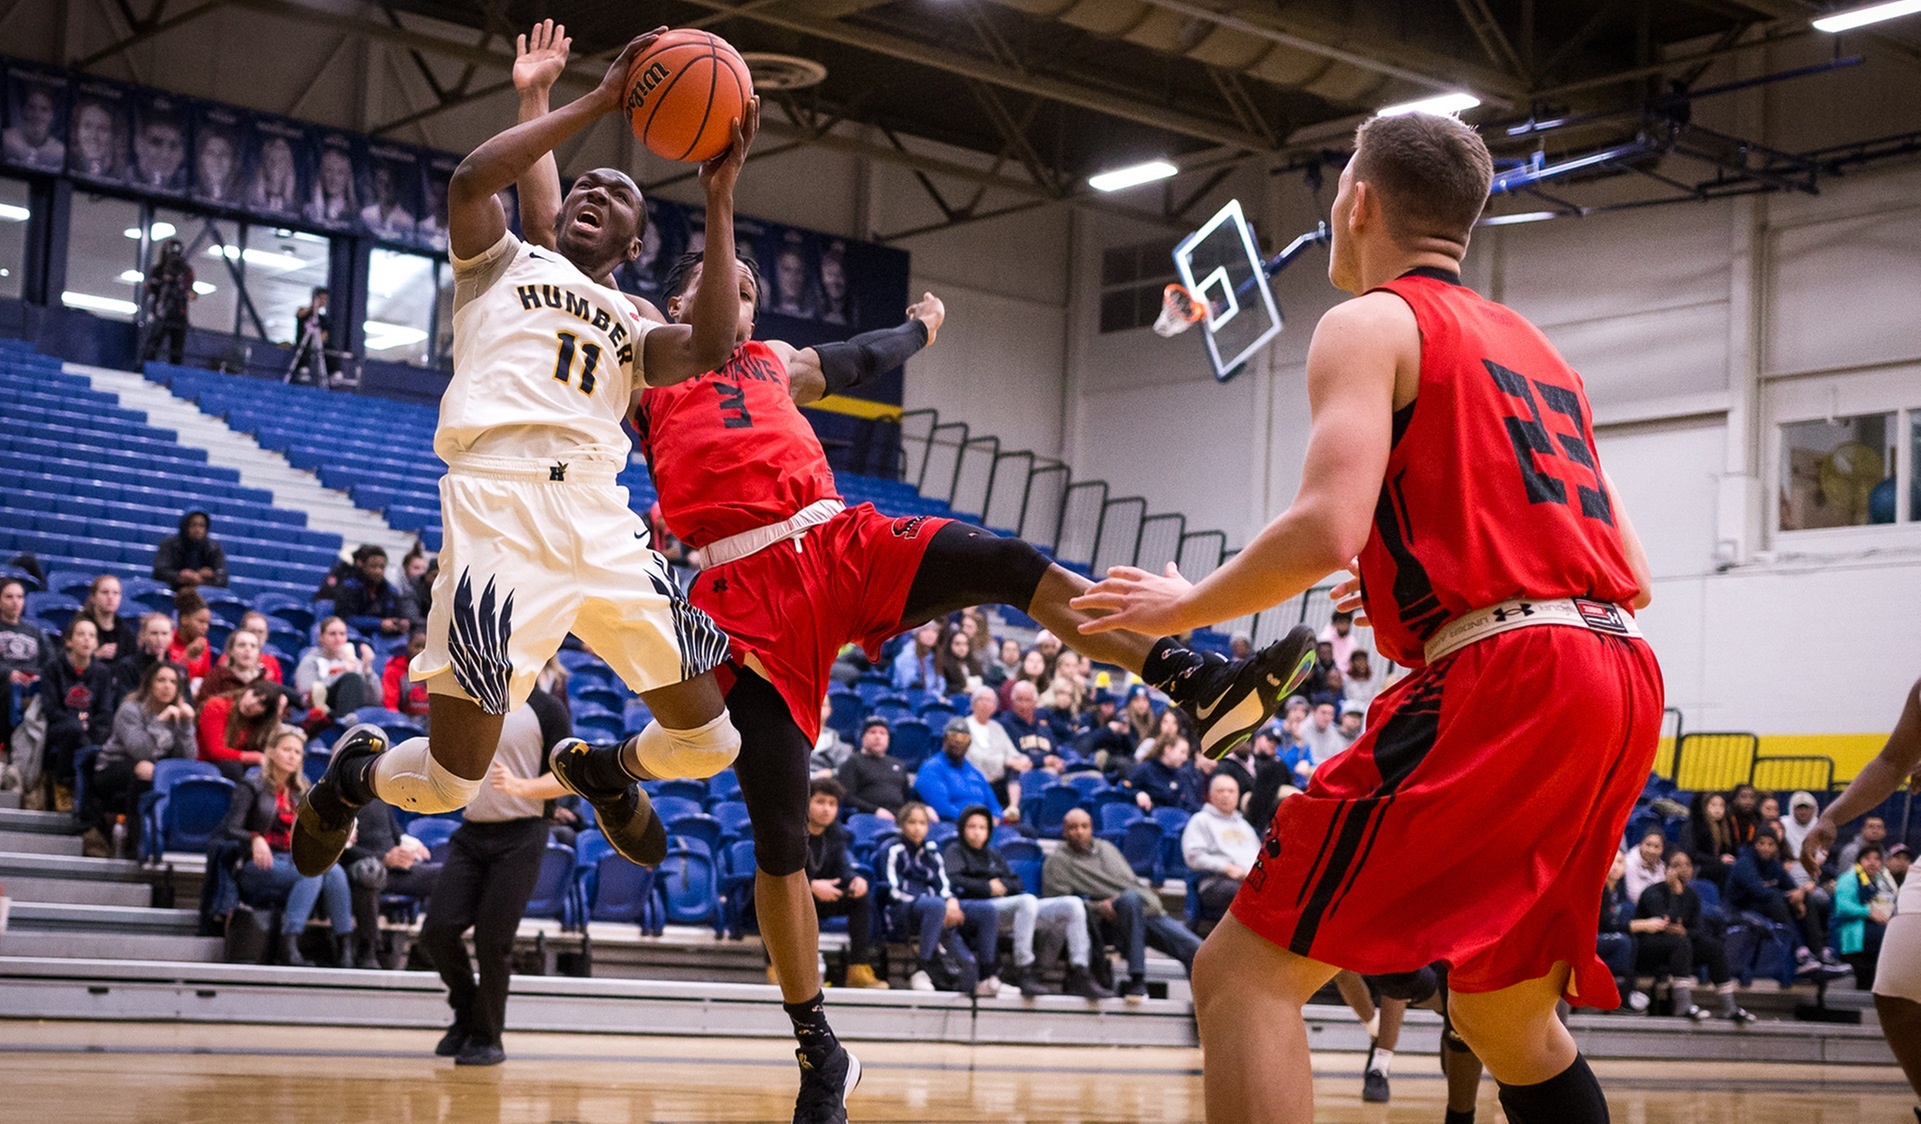 ELVIS' CAREER-HIGH LIFTS No. 3 HUMBER OVER FANSHAWE, 82-70